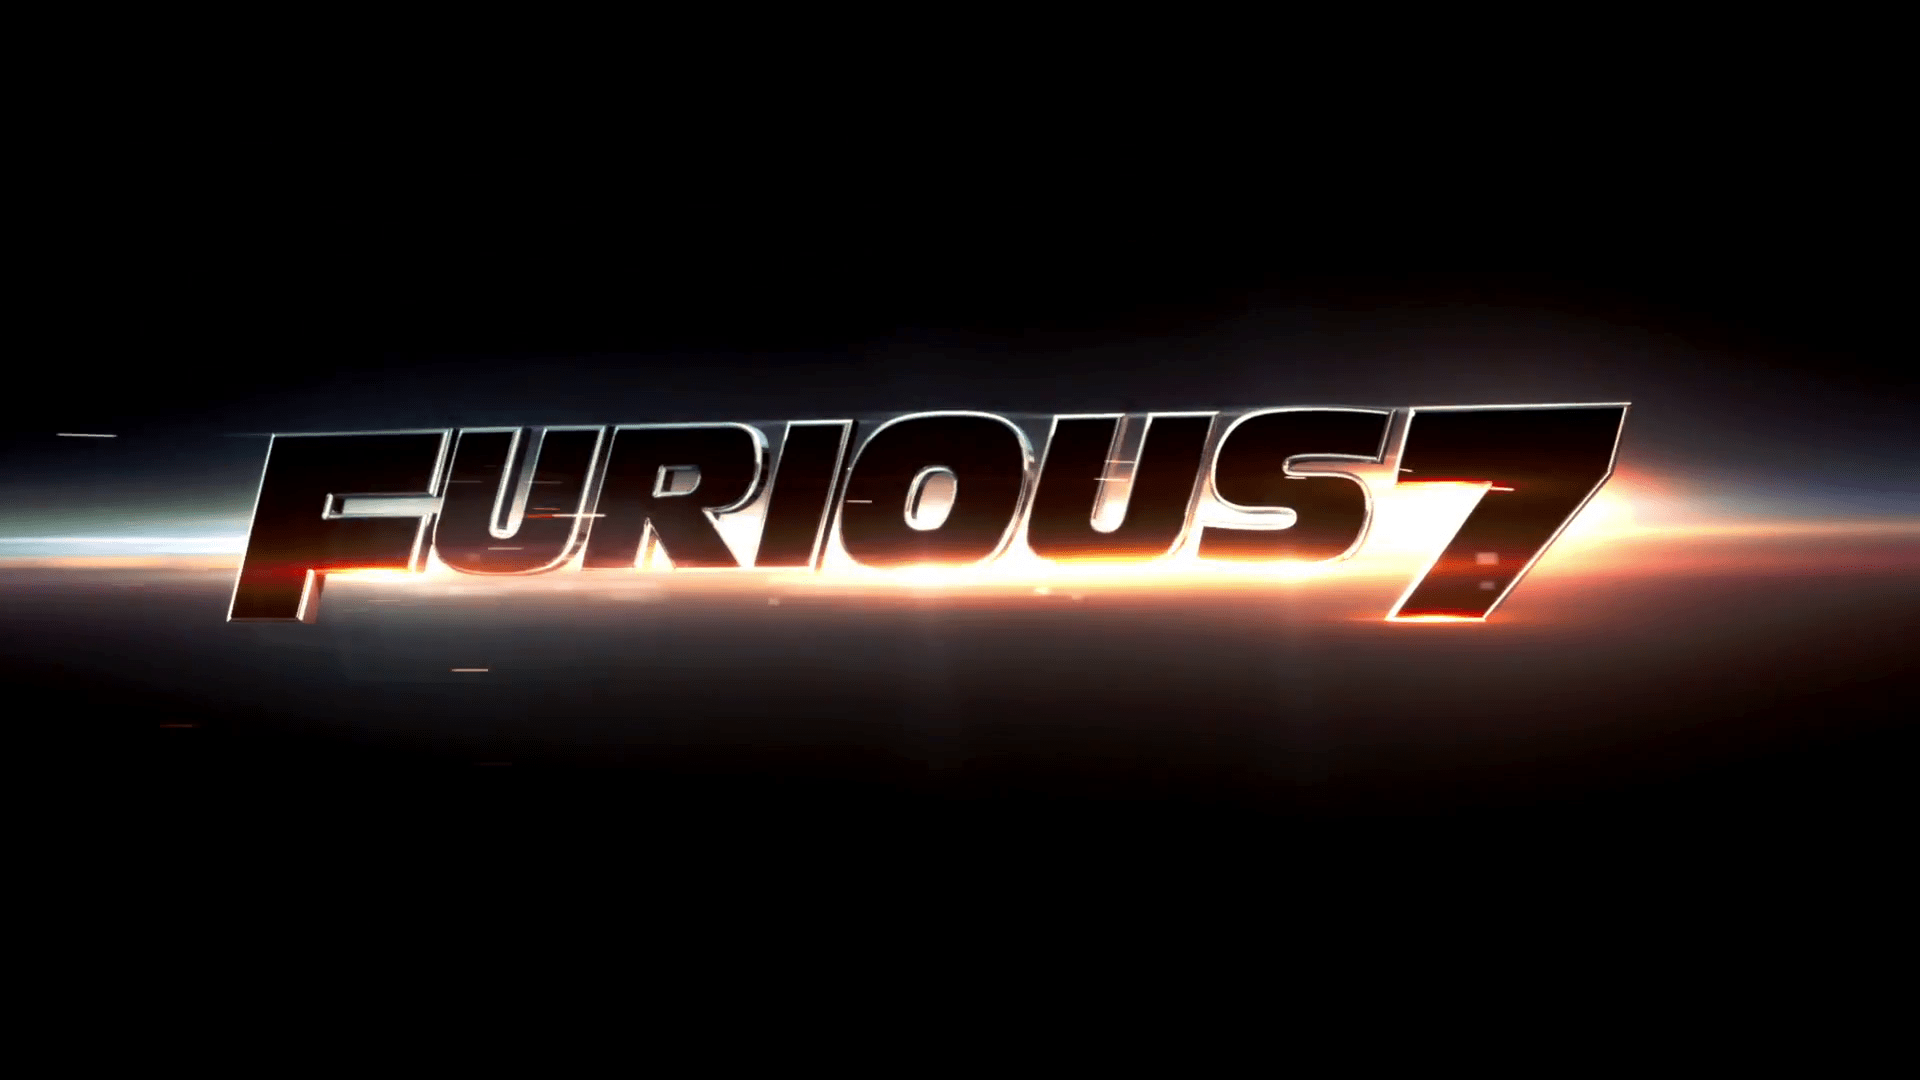 Fast & Furious 7 widescreen for desktop